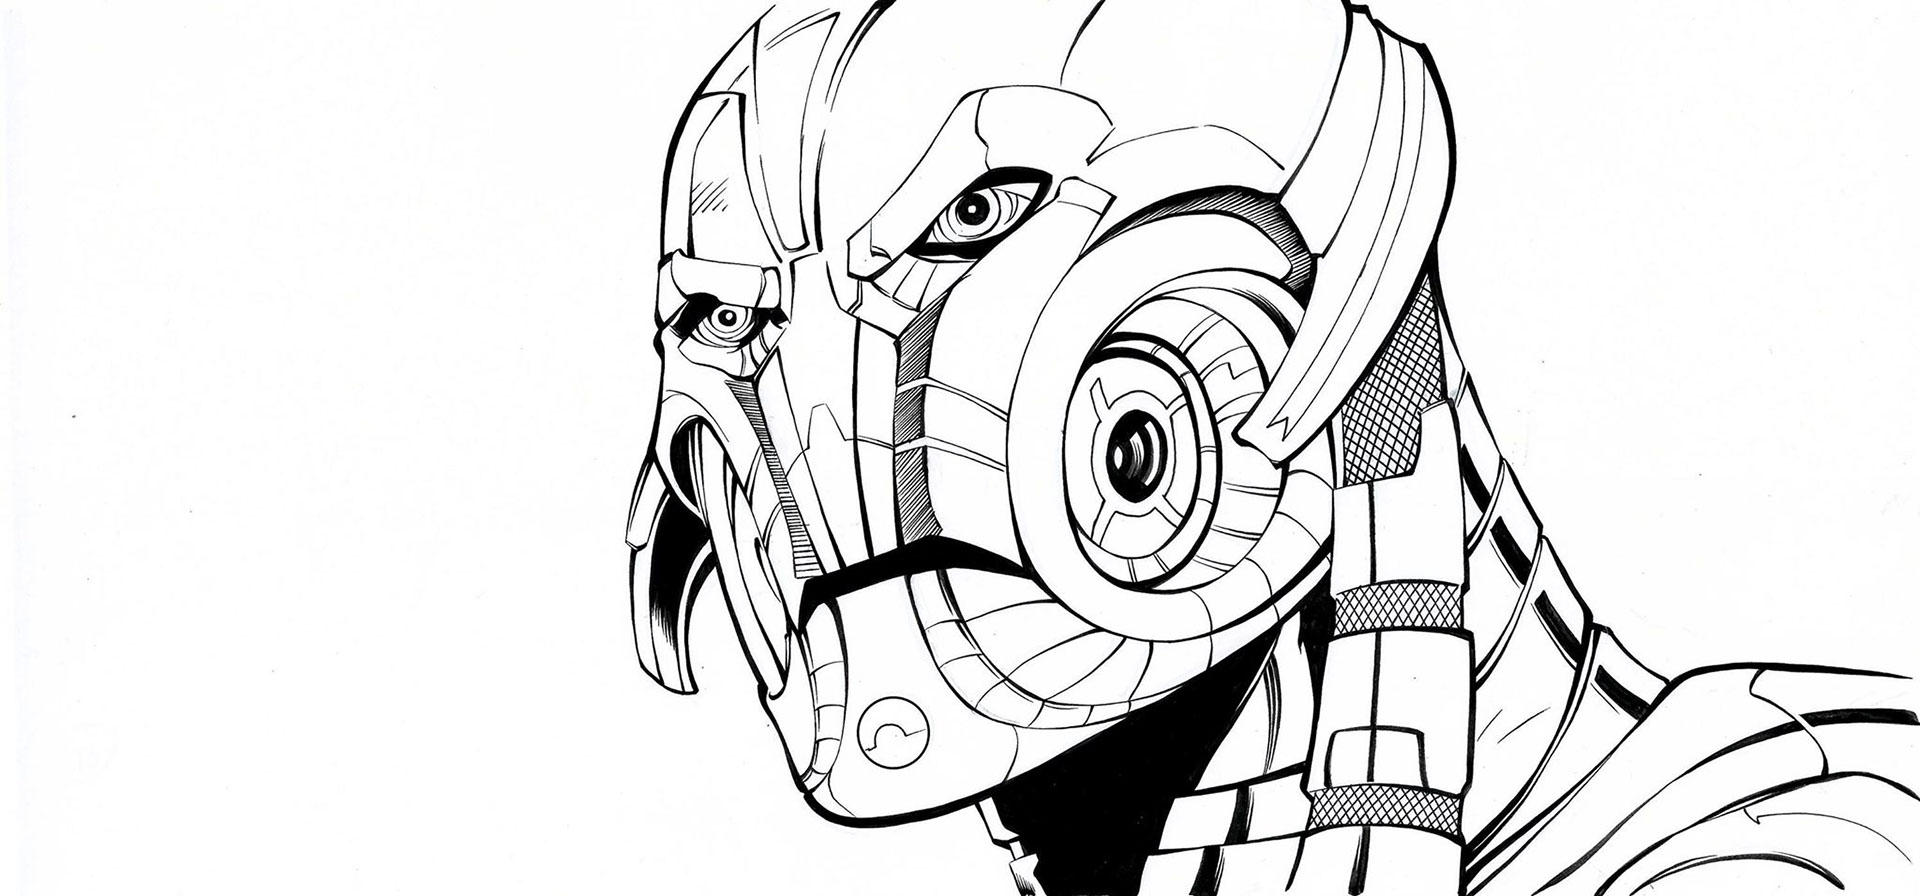 1920x896 Ron Lim Ultron Marvel Heroes In Anthony Fowler's Anthony